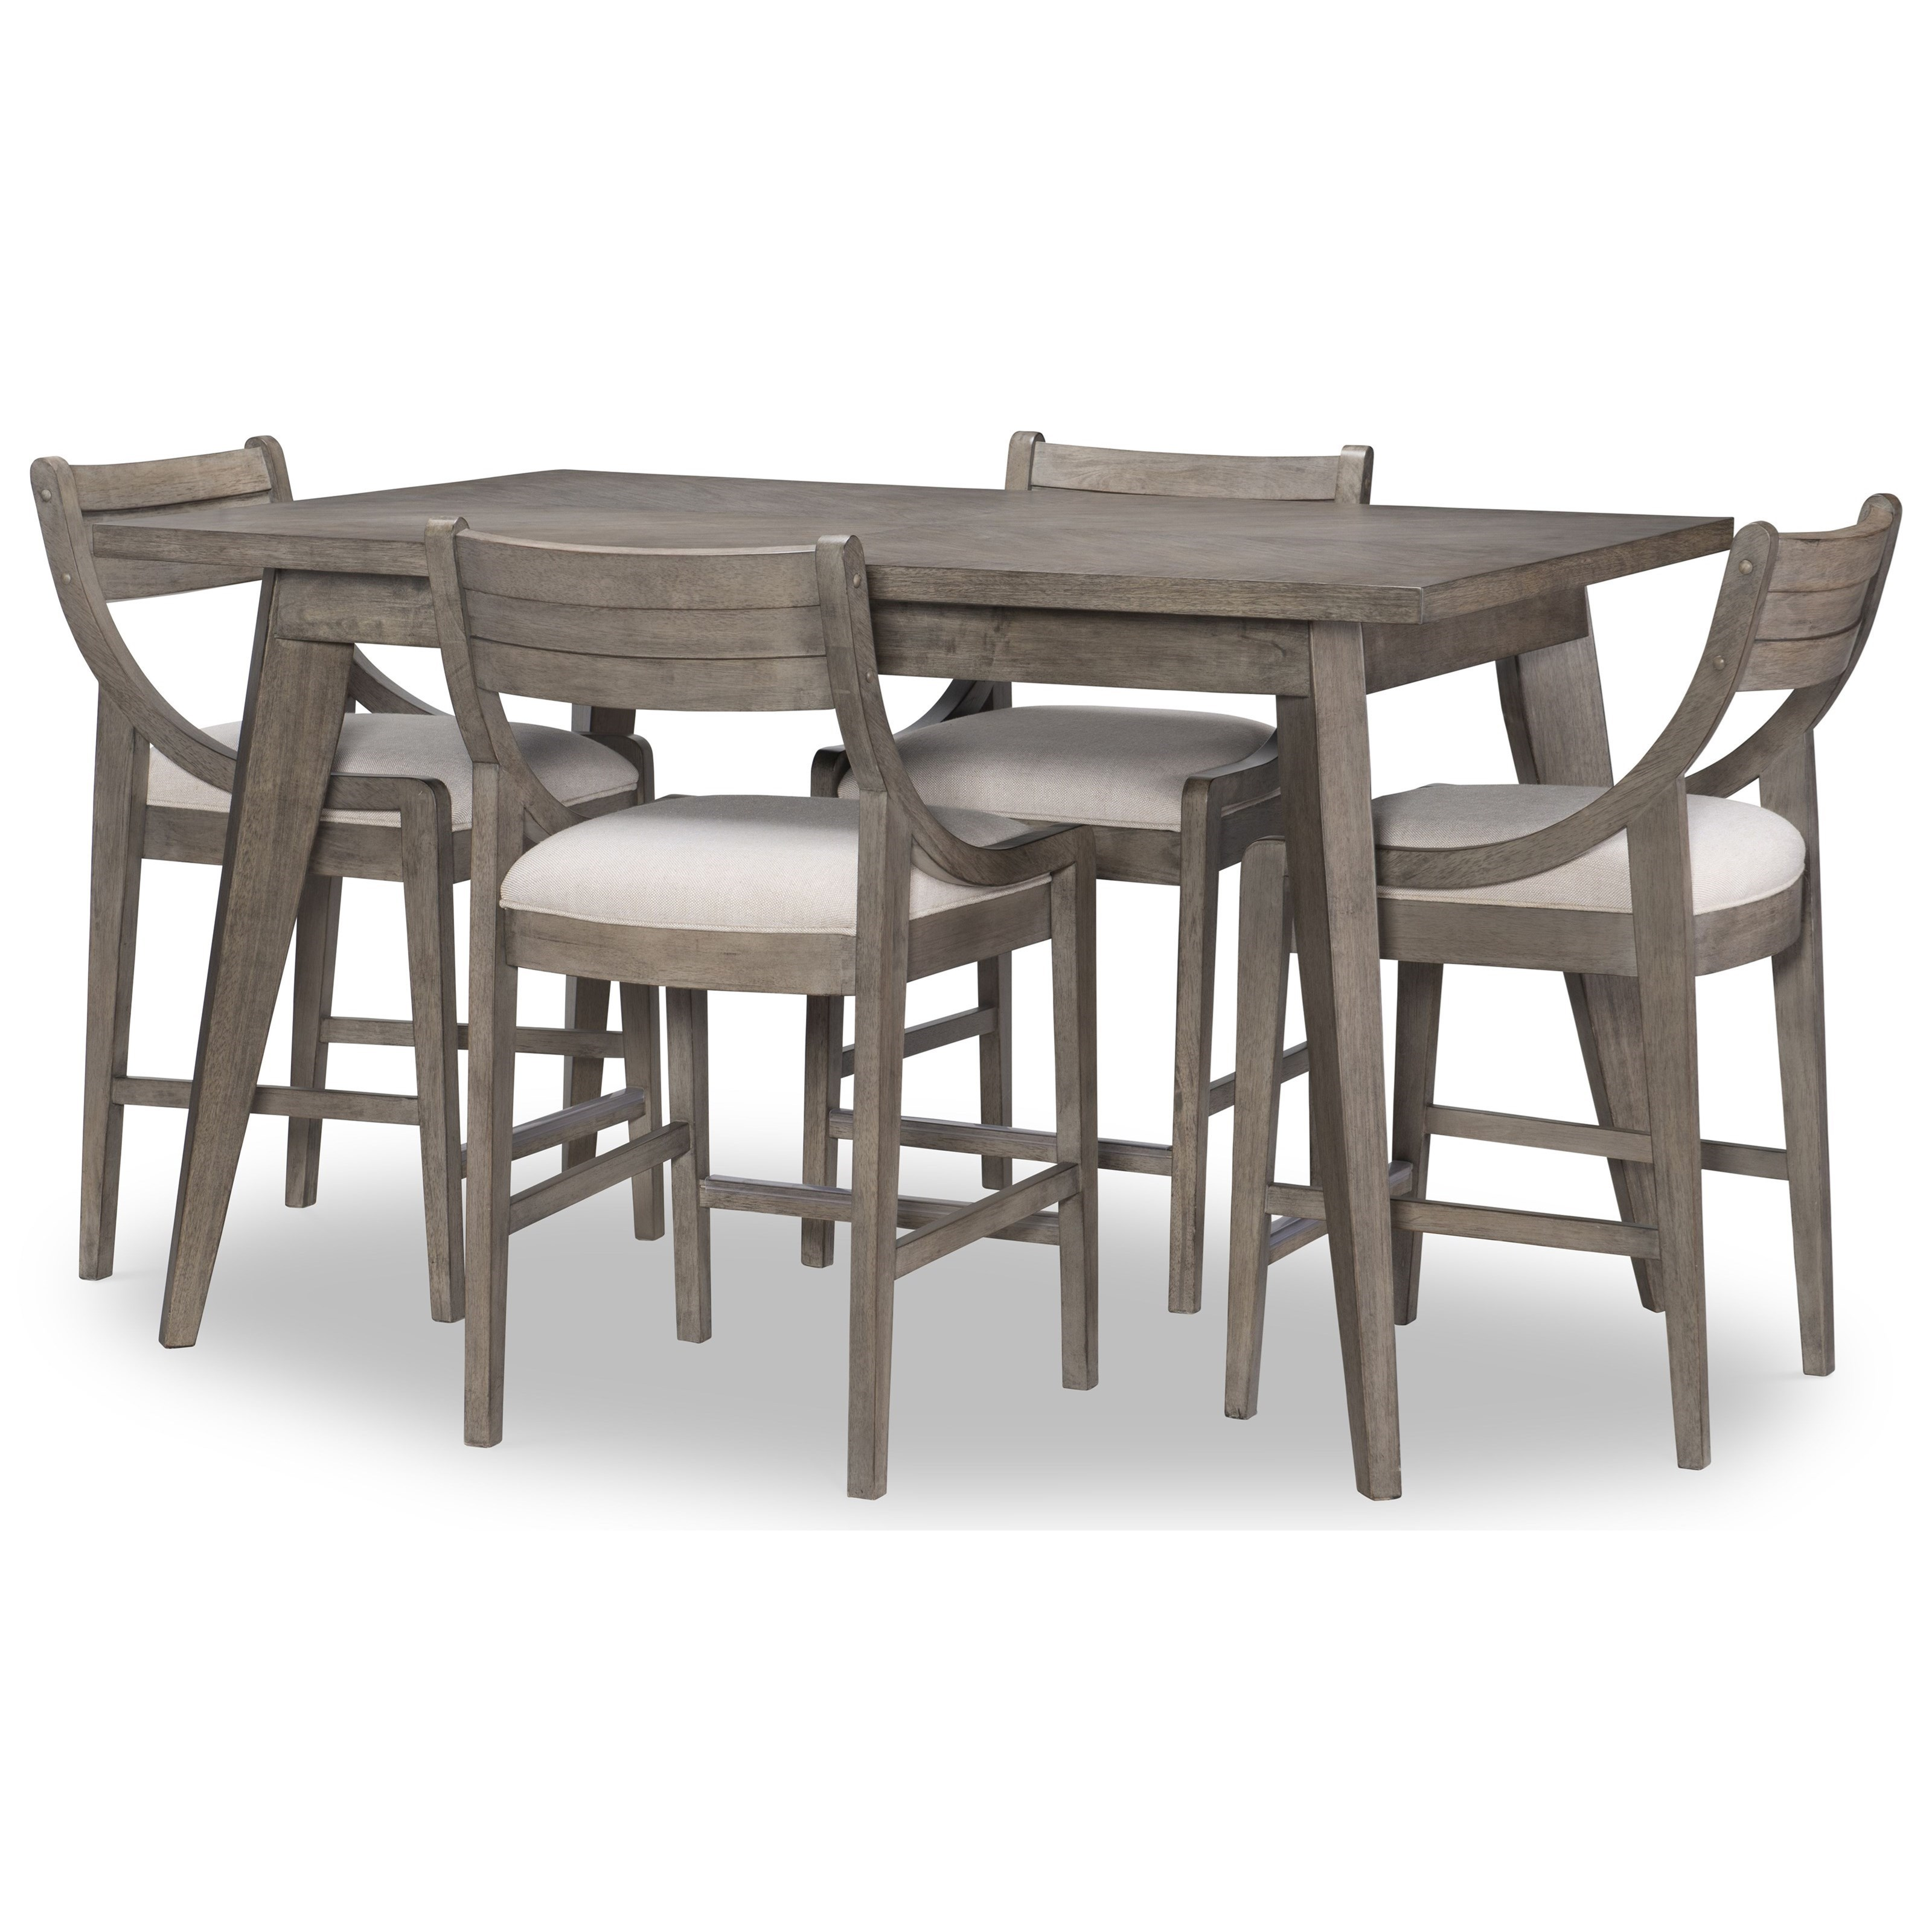 Greystone 5-Piece Pub Table Set by Legacy Classic at Stoney Creek Furniture